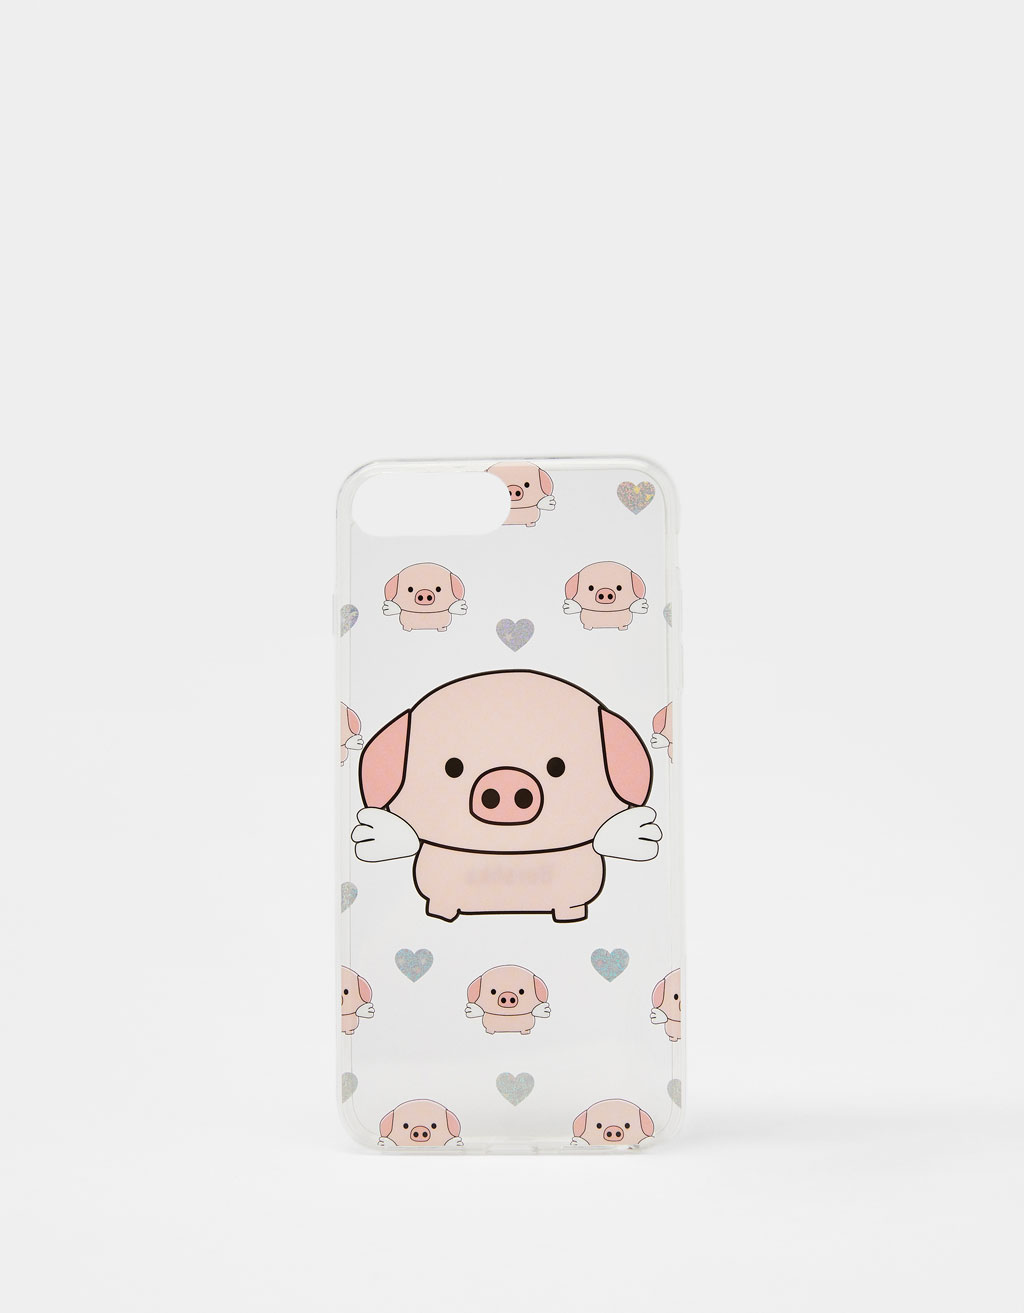 Hoesje Little Pig voor iPhone 6 plus /7 plus /8 plus